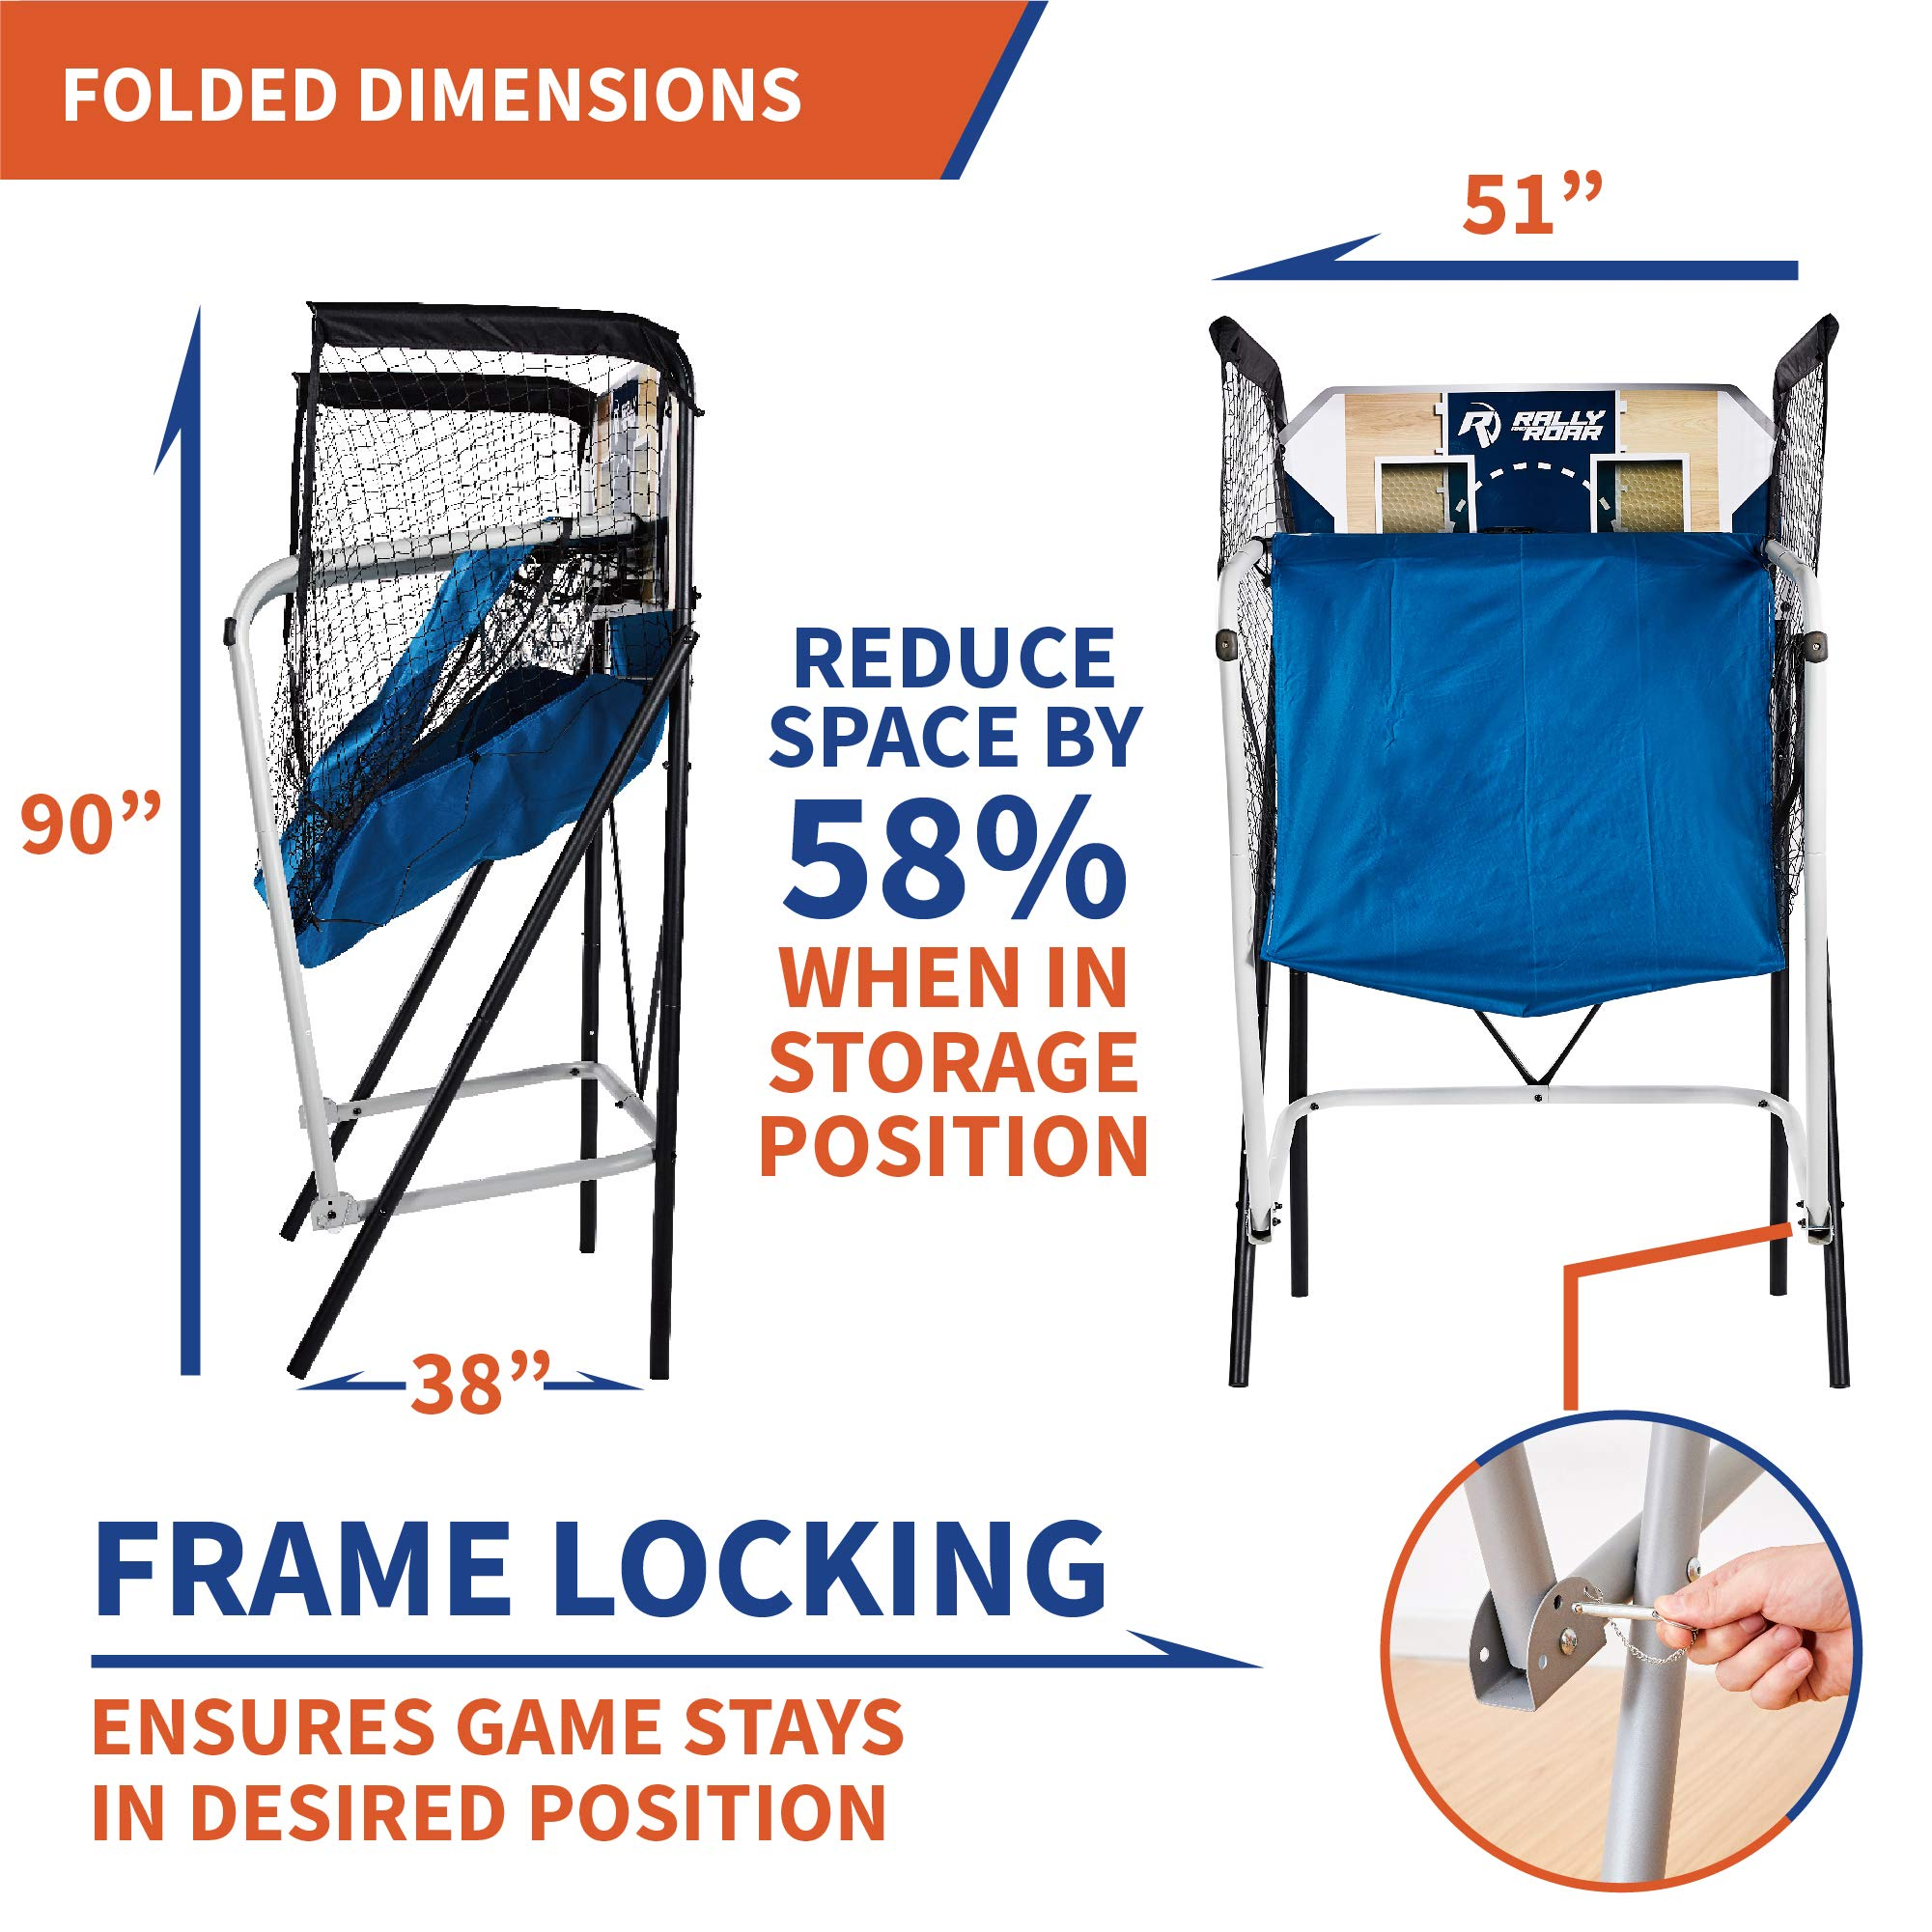 Premium Shootout Basketball Arcade Game, Home Dual Shot with LED Lights and Scorer - 8-Option Interactive Indoor Basketball Hoop Game with Double Hoops, 7 Basketballs, Pump - Foldable Space Saver by Rally and Roar (Image #4)